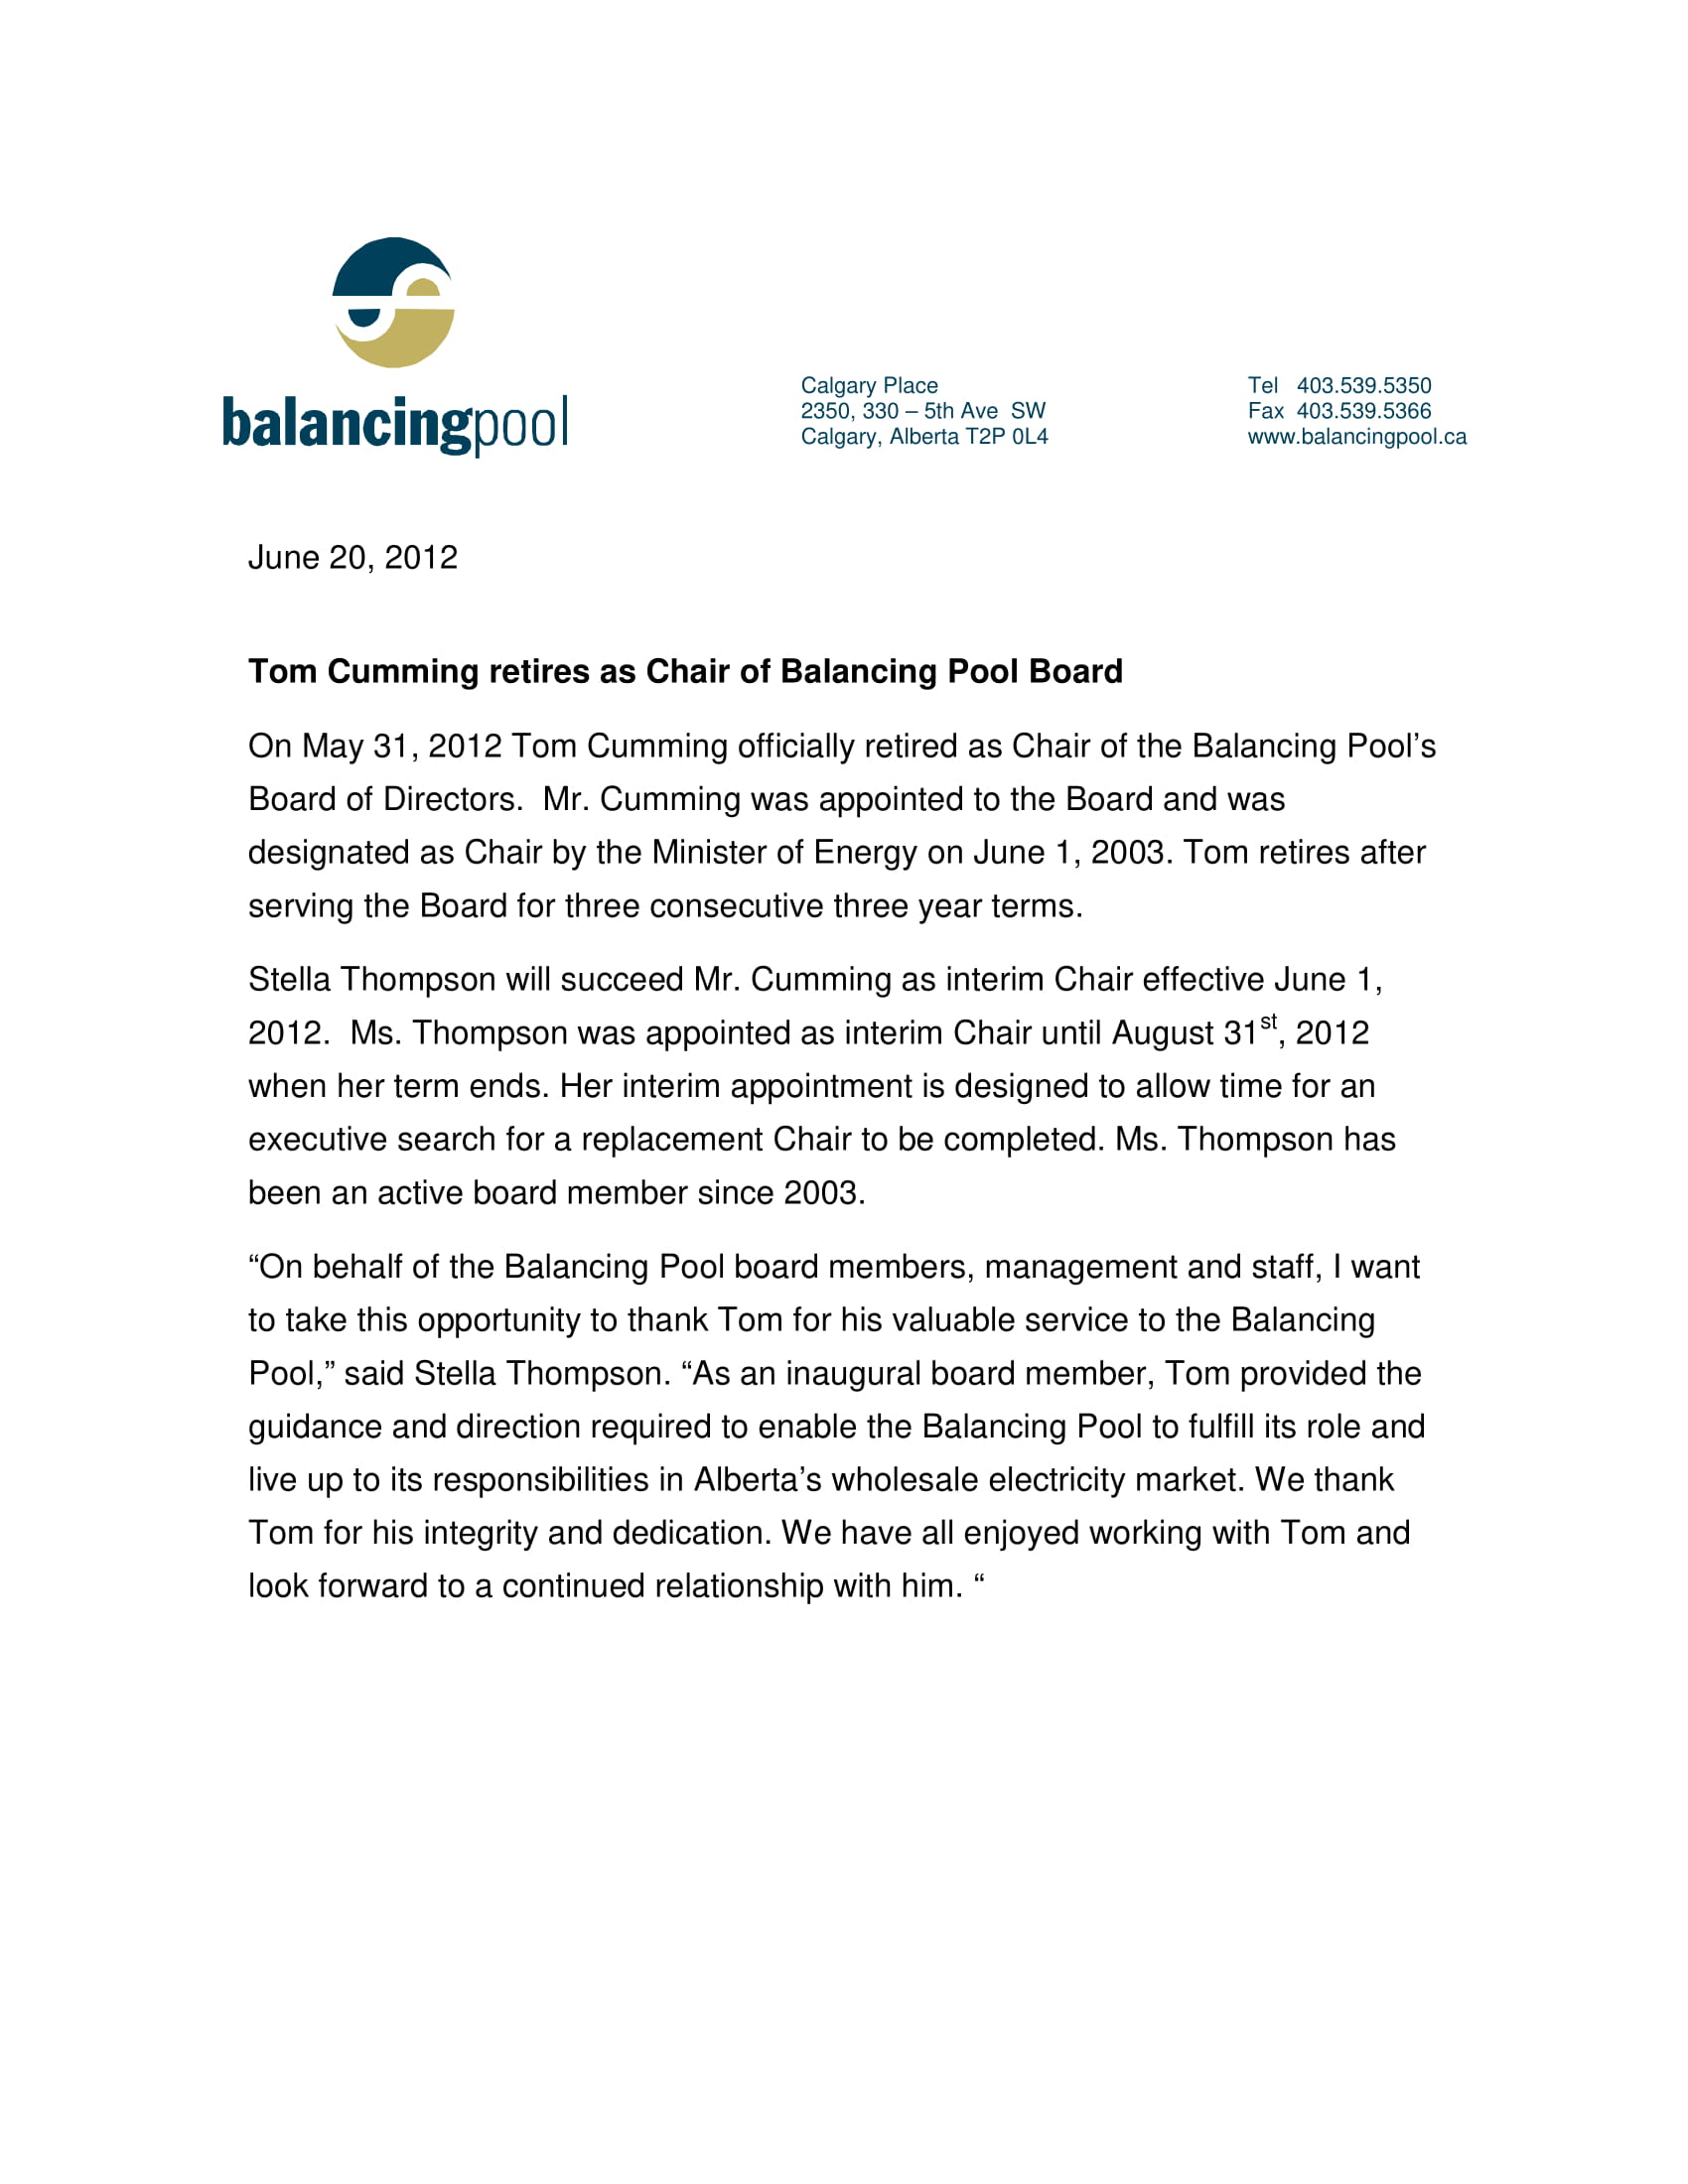 News Release 2012 Tom Cumming Retires